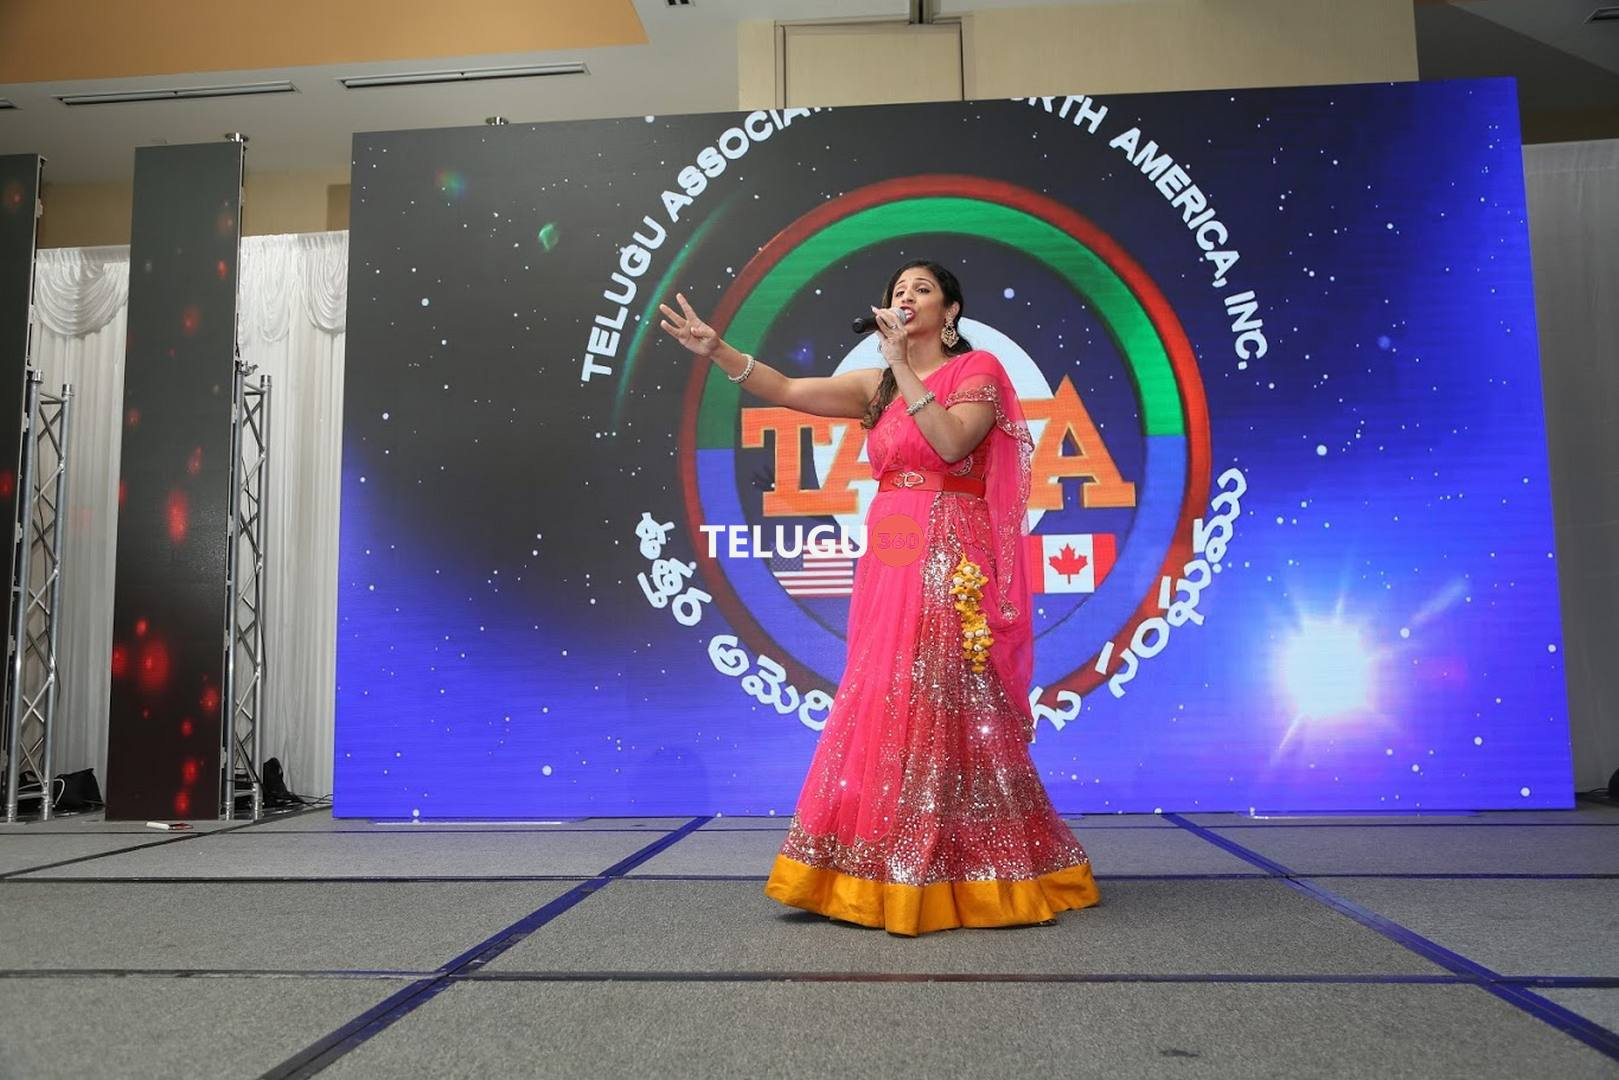 TANA raised $3.2 Million for the 22nd TANA Conference.TANA raised $3.2 Million for the 22nd TANA Conference.